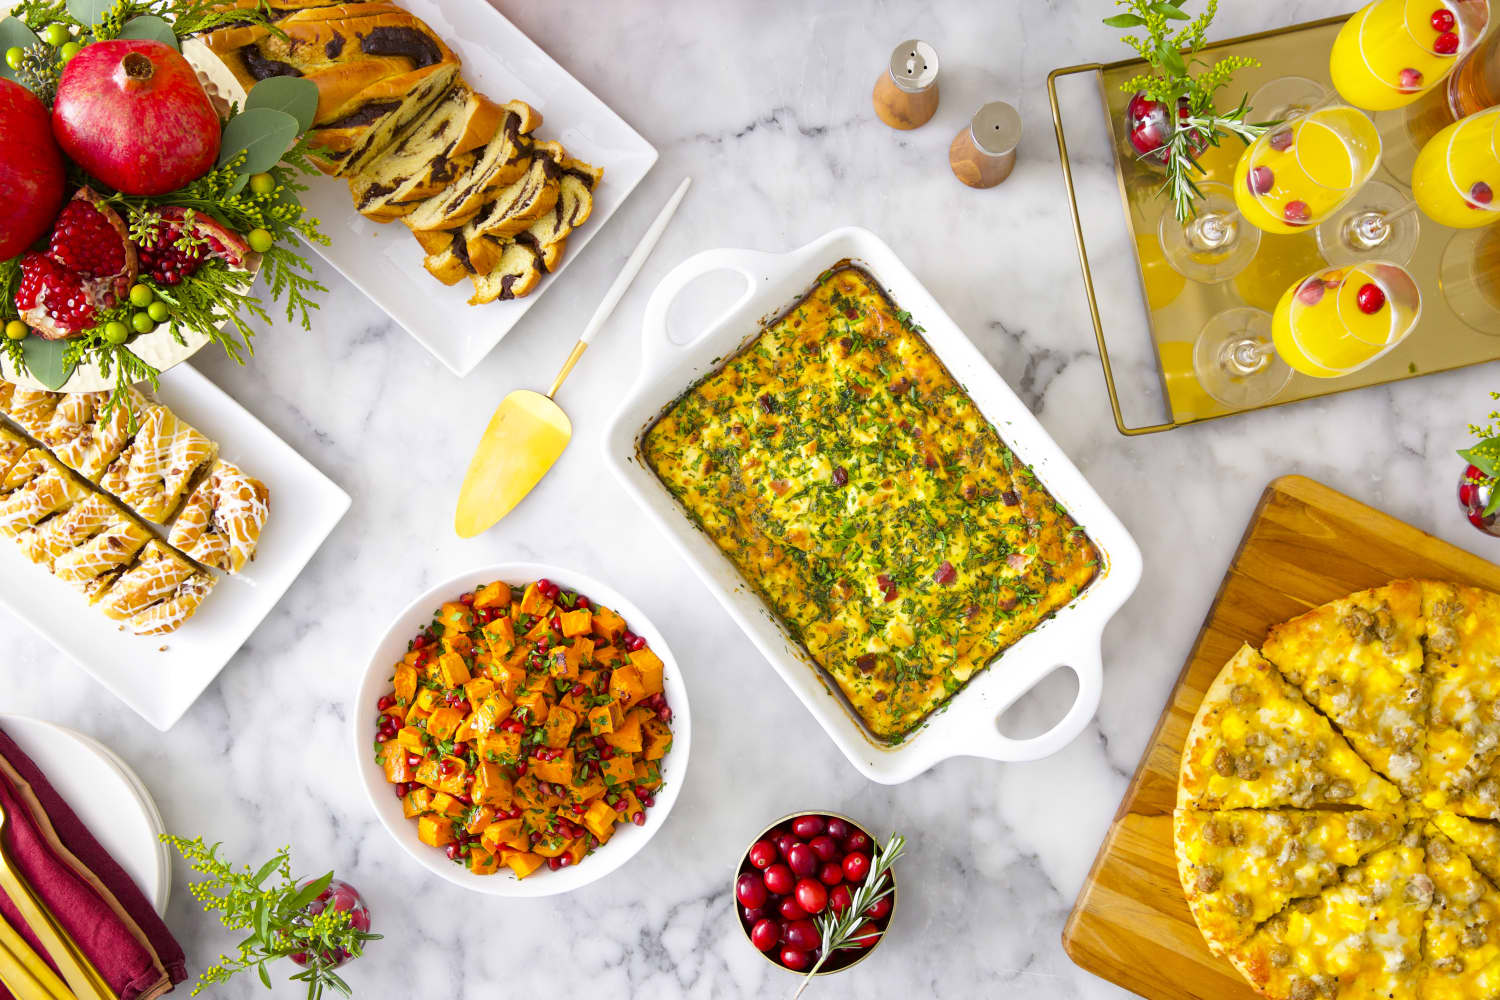 5 Must-Haves for an Effortless Holiday Brunch